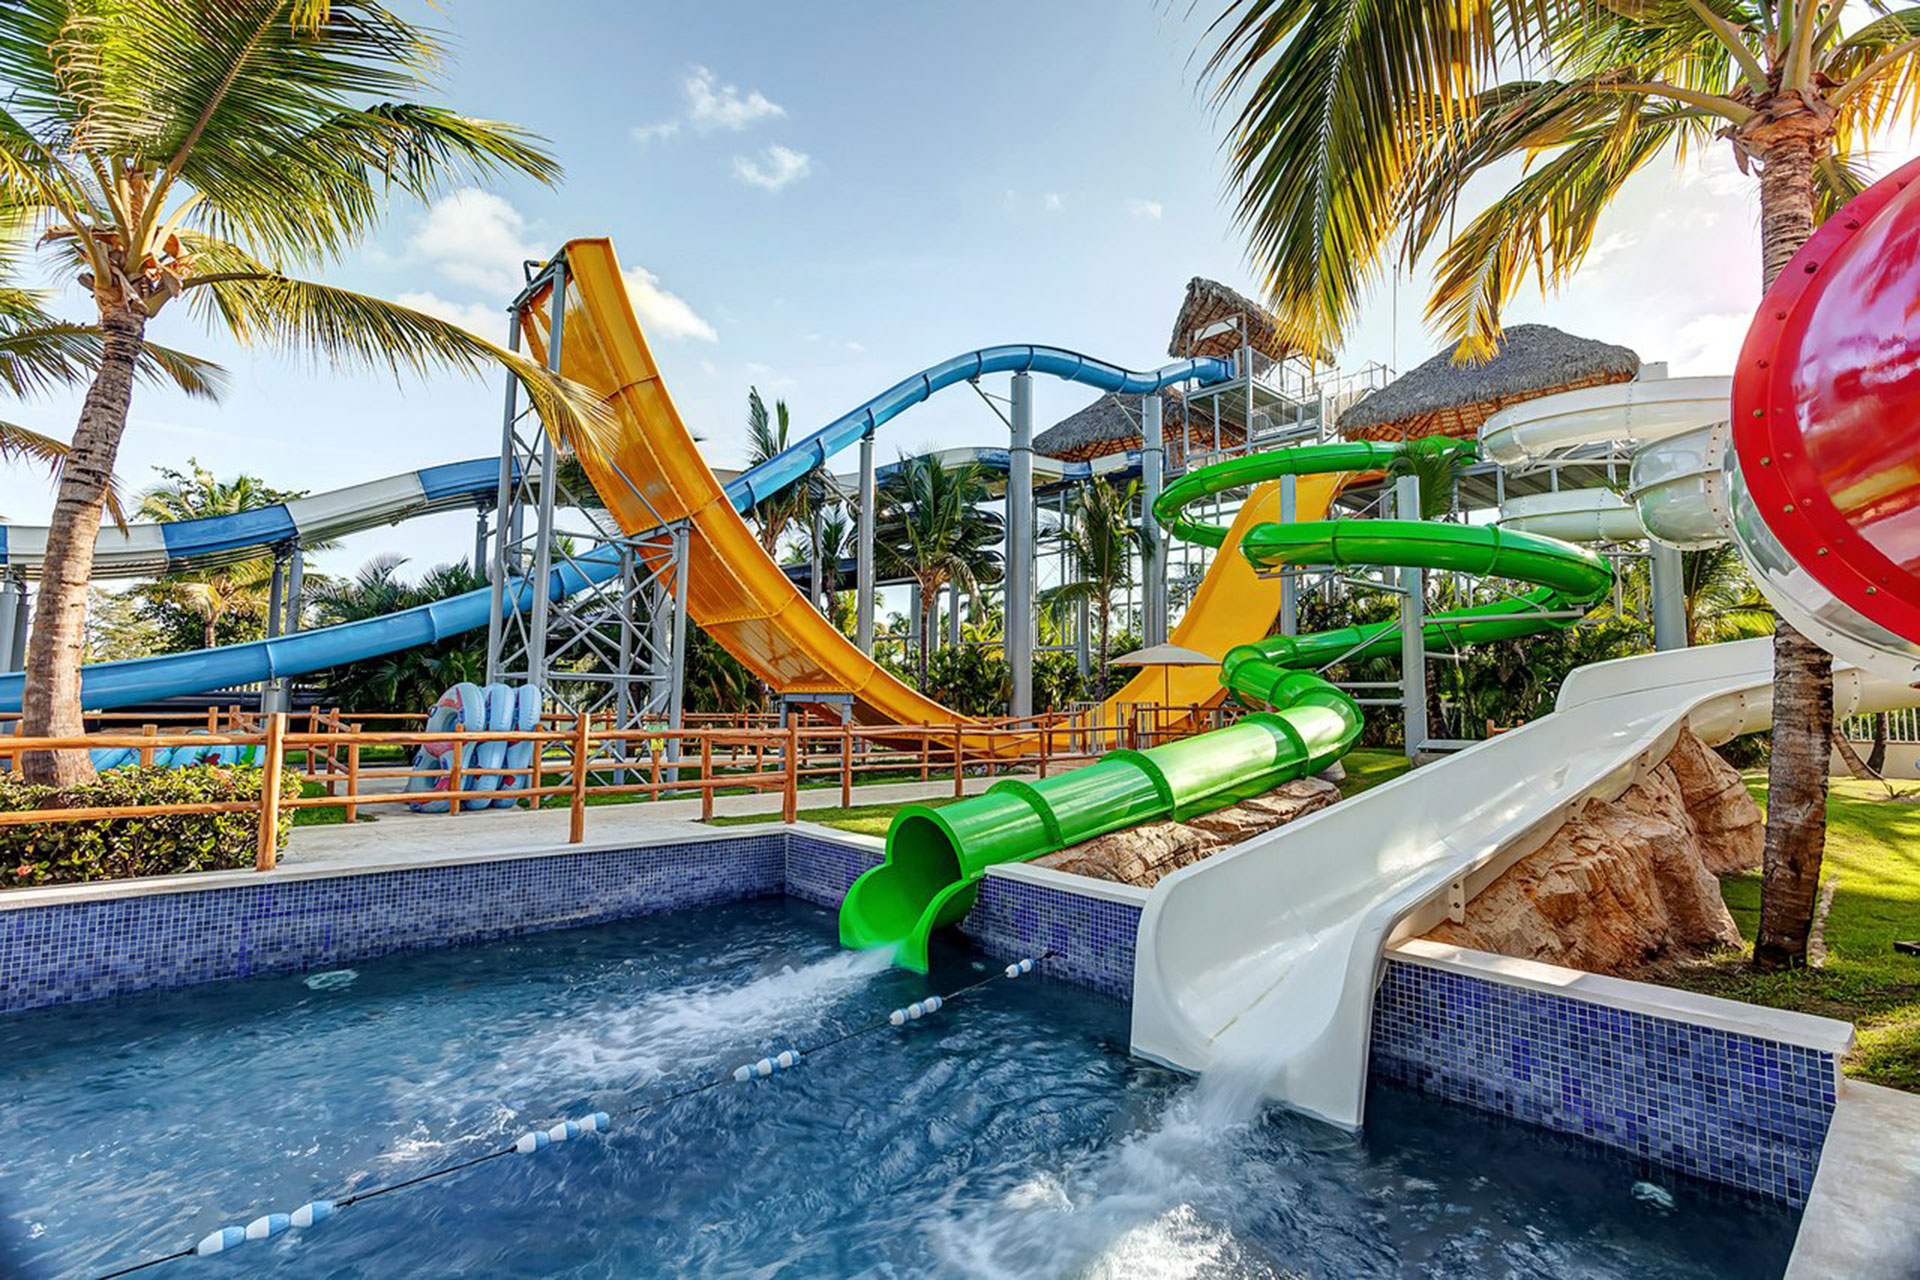 Water Park at Memories Splash Punta Cana; Courtesy of Memories Splash Punta Cana